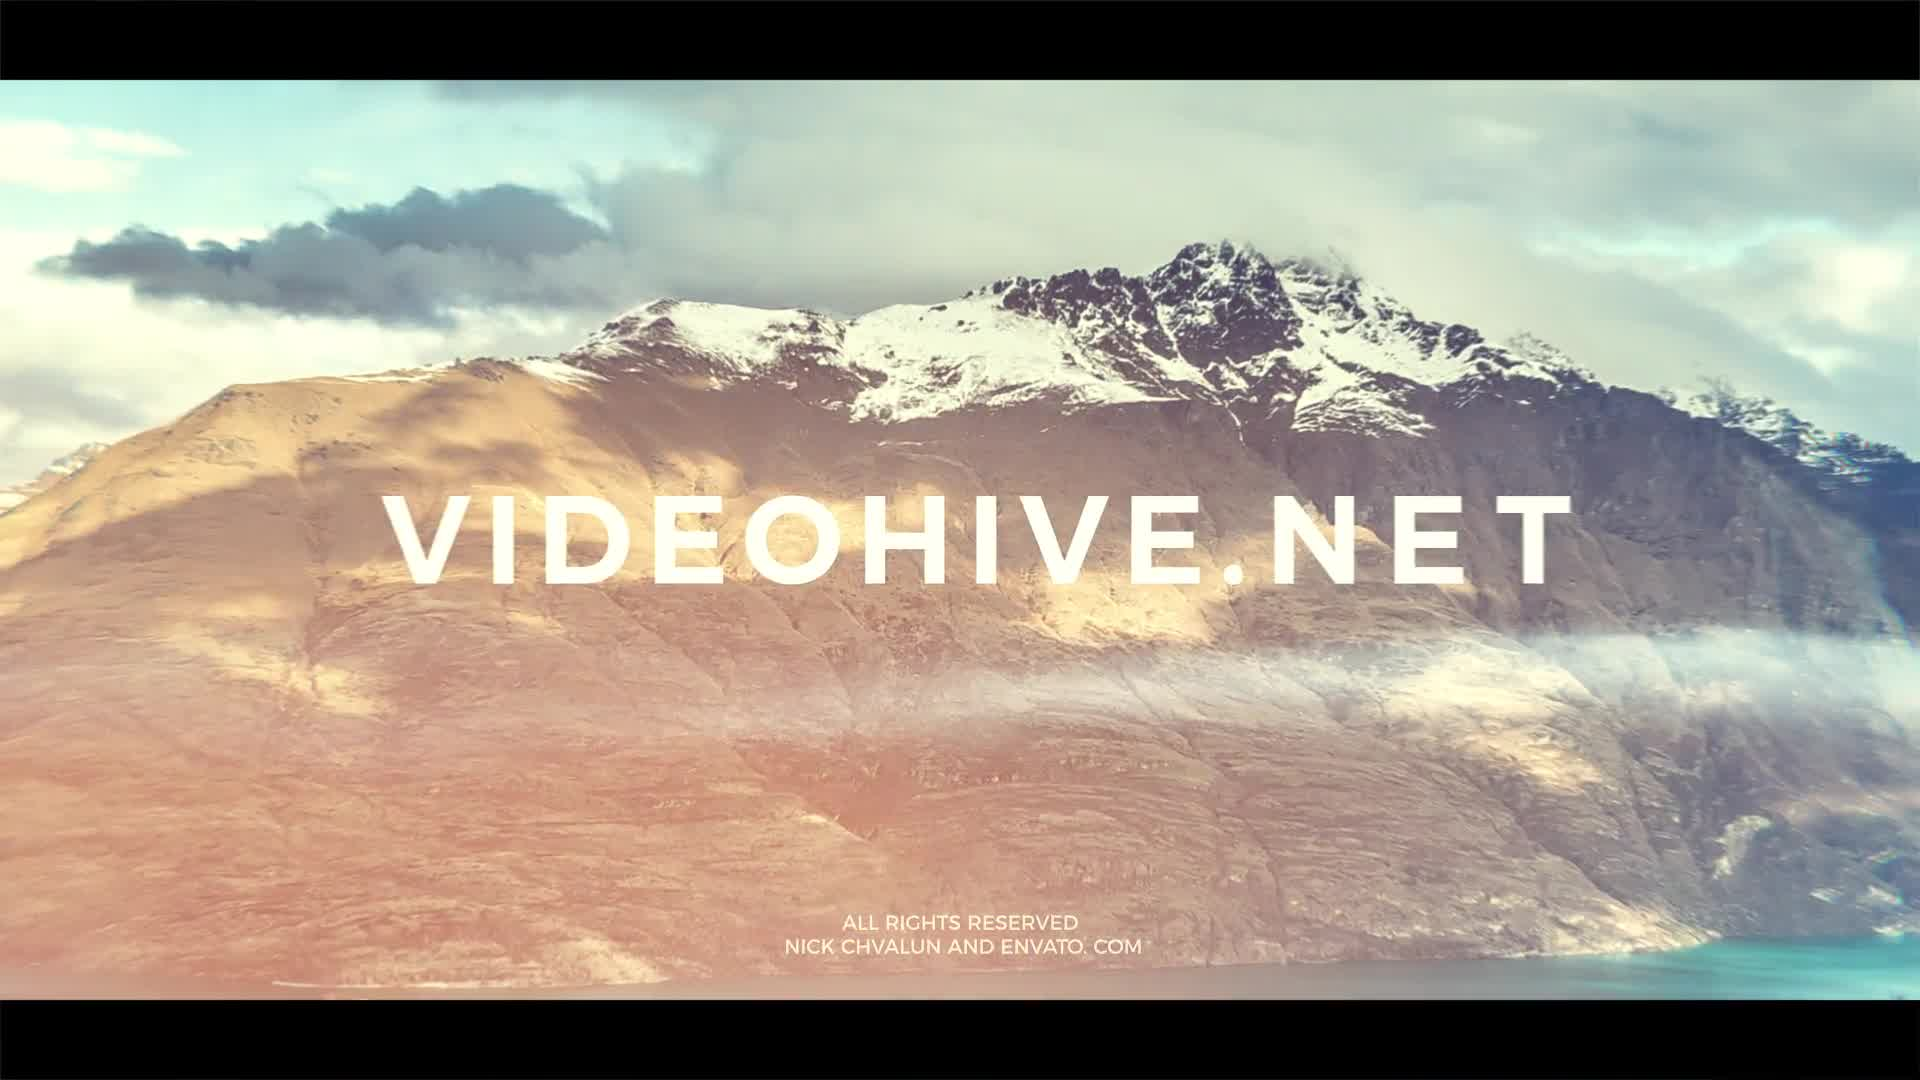 Dynamic Upbeat Slideshow - Download Videohive 20175505